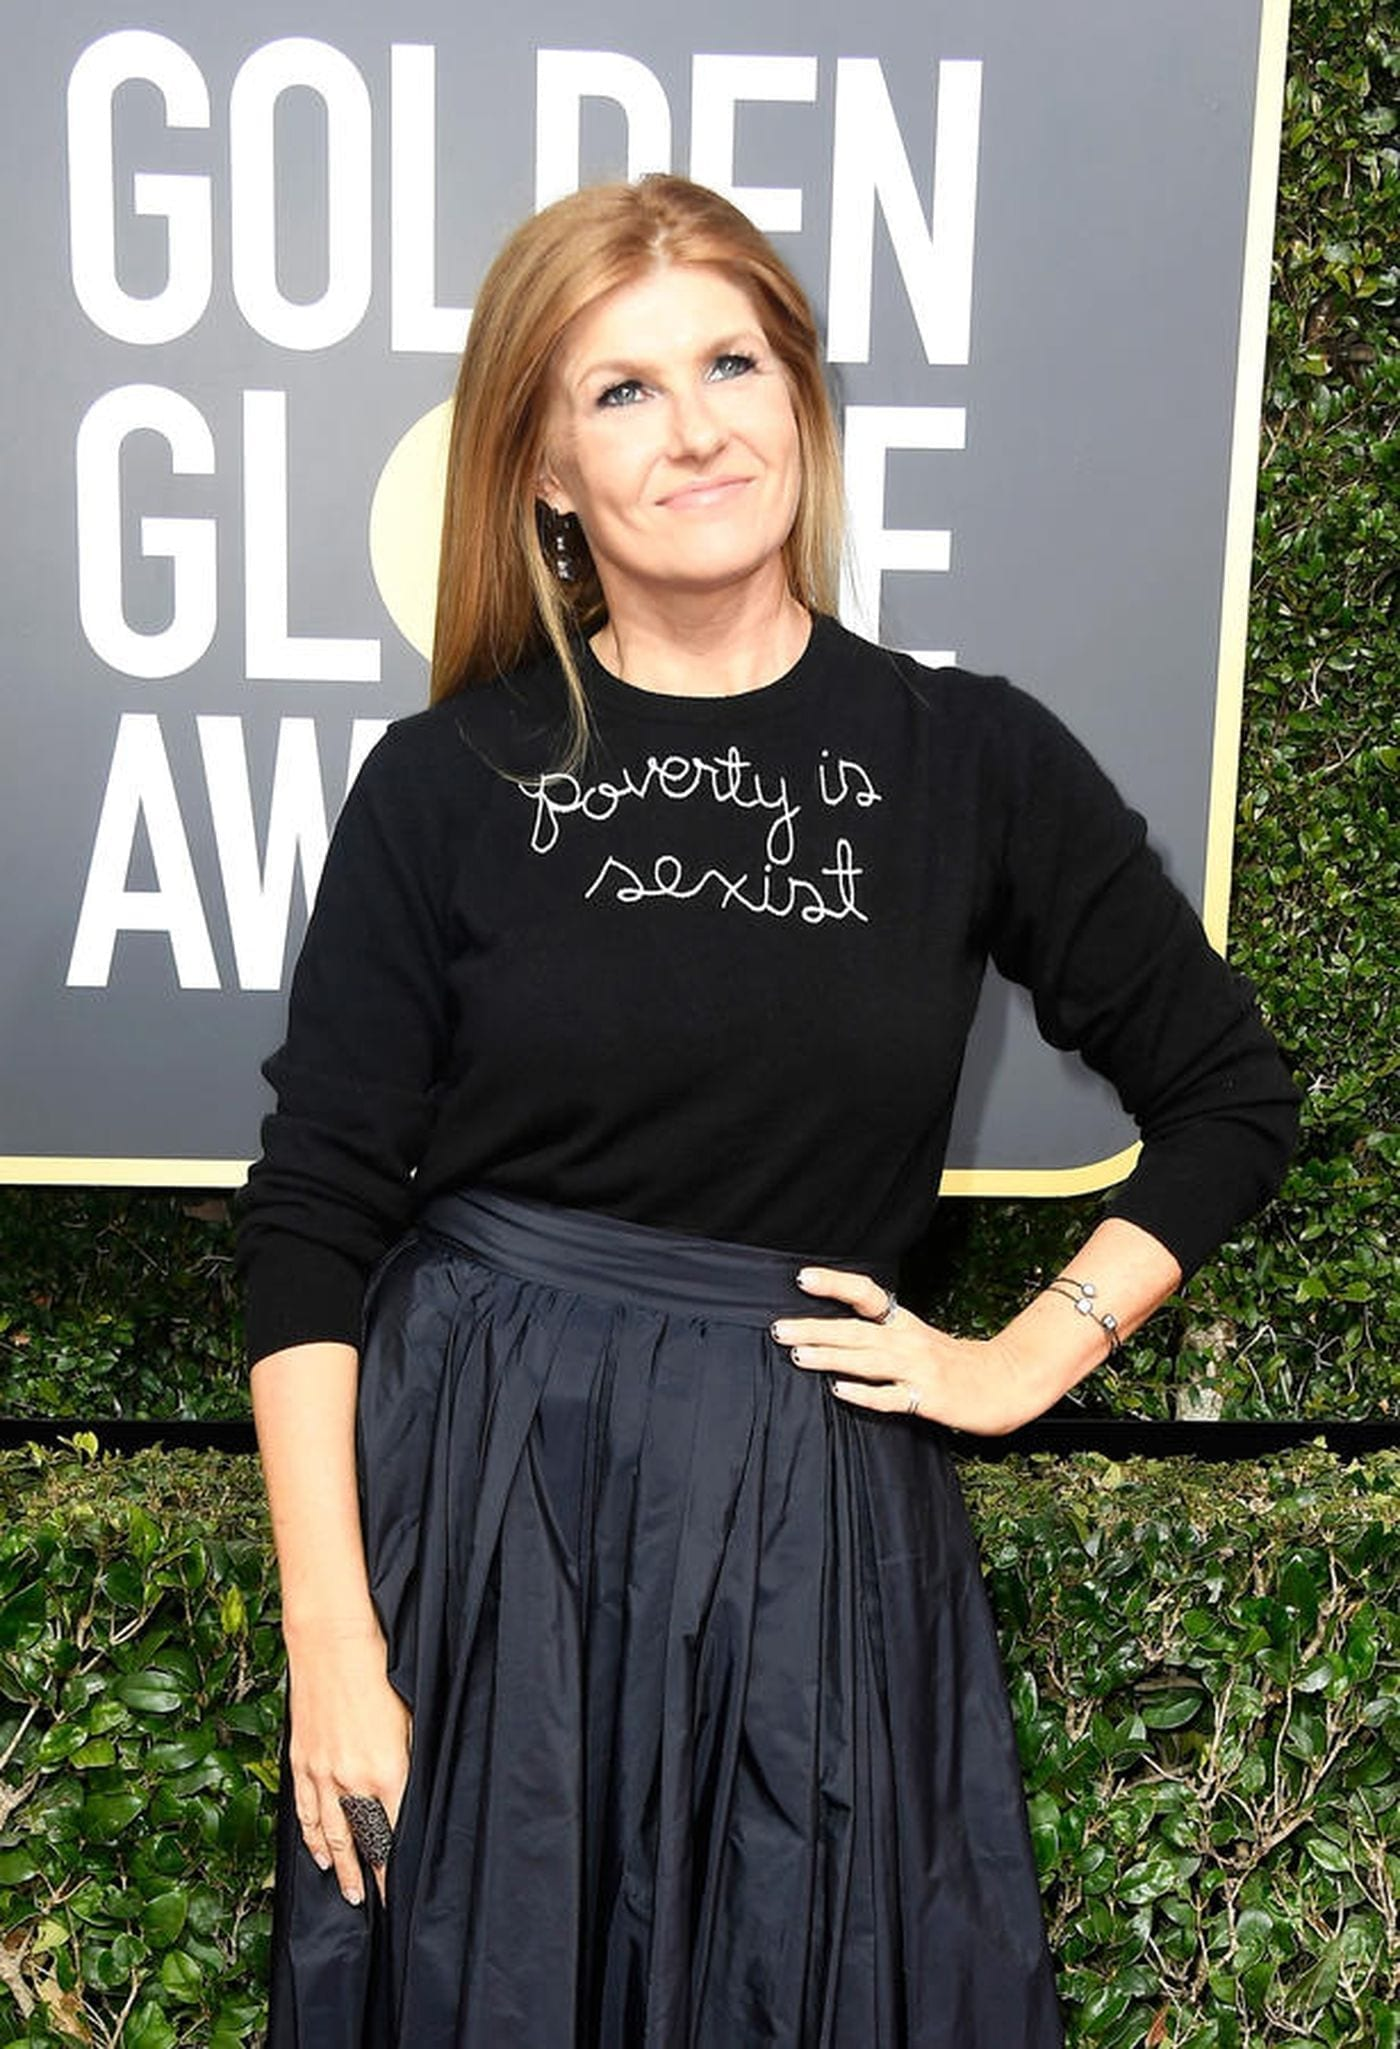 Actress Connie Britton at the 75th Golden Globe Awards at the Beverly Hilton Hotel on Jan. 7, 2018 in Beverly Hills. (Frazer Harrison/Getty Images)